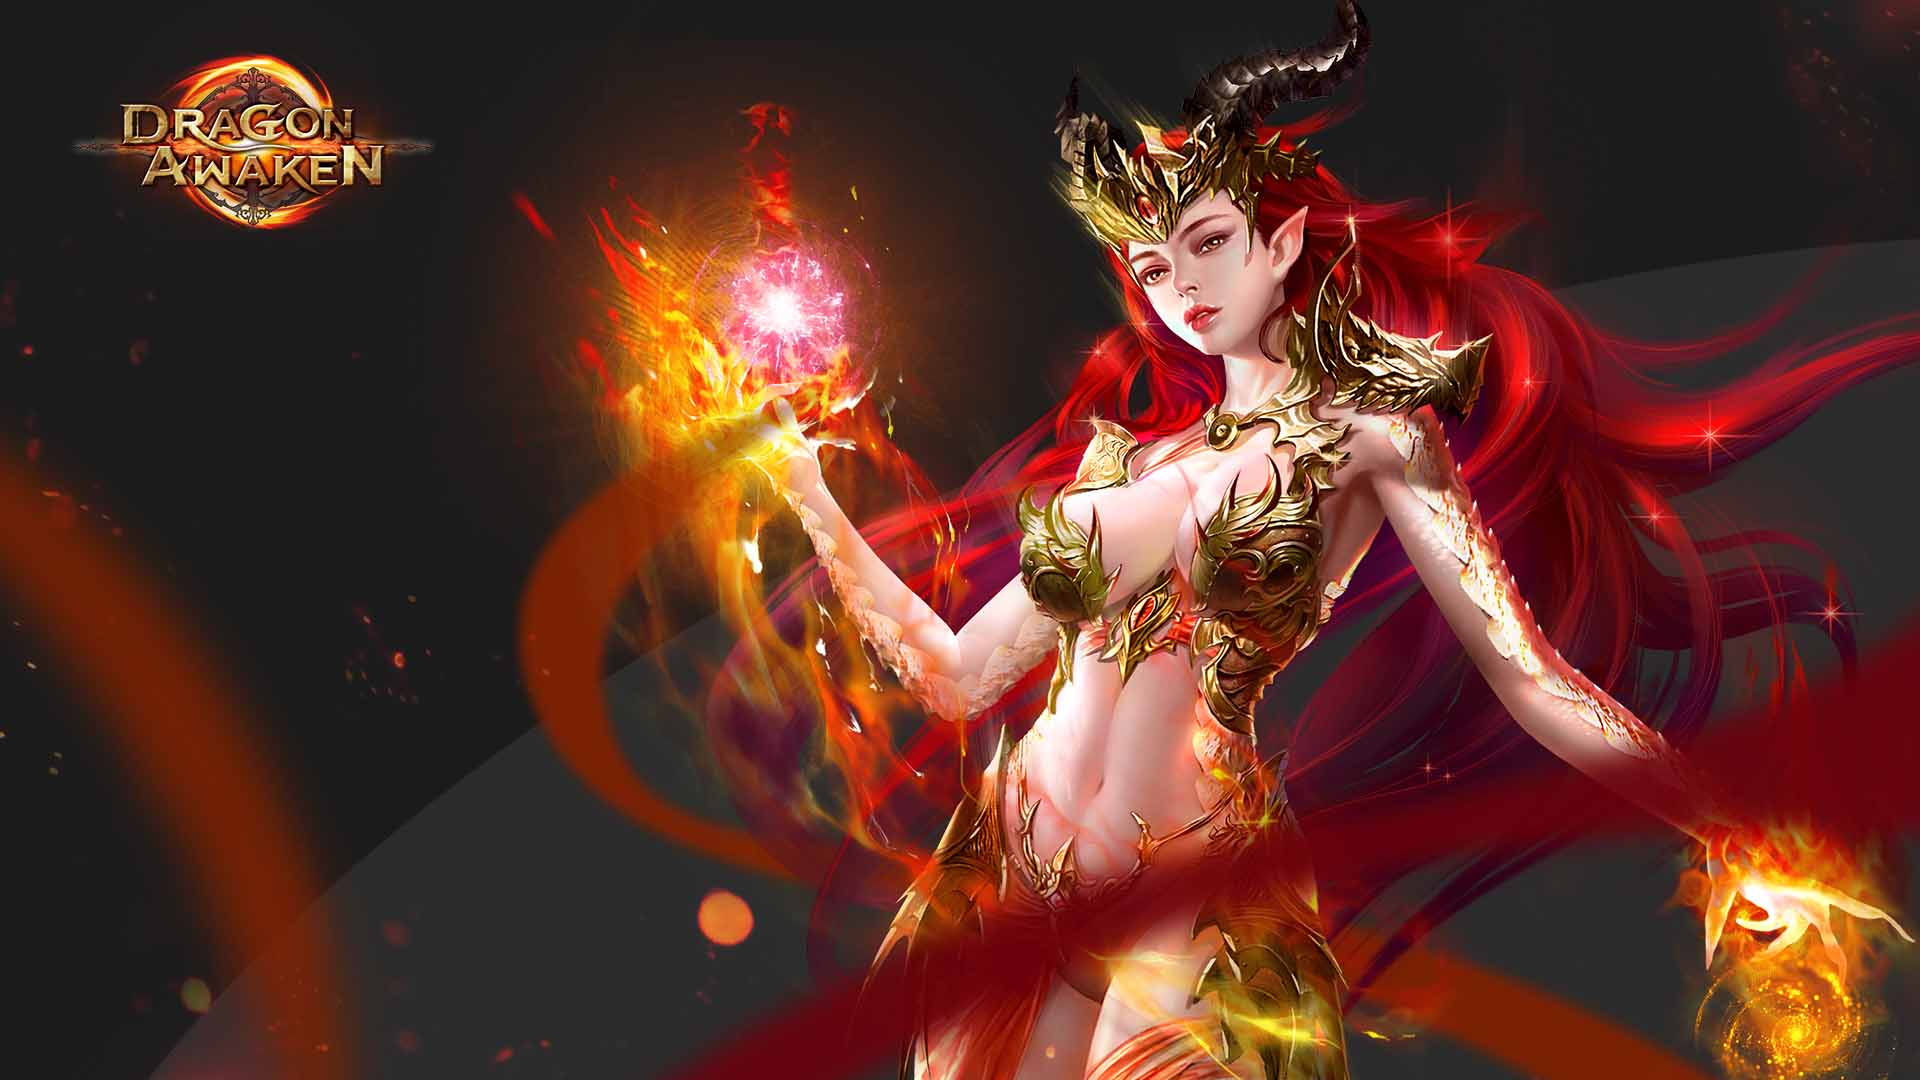 The Best 3d Wallpapers In The World Dragon Awaken Wallpapers